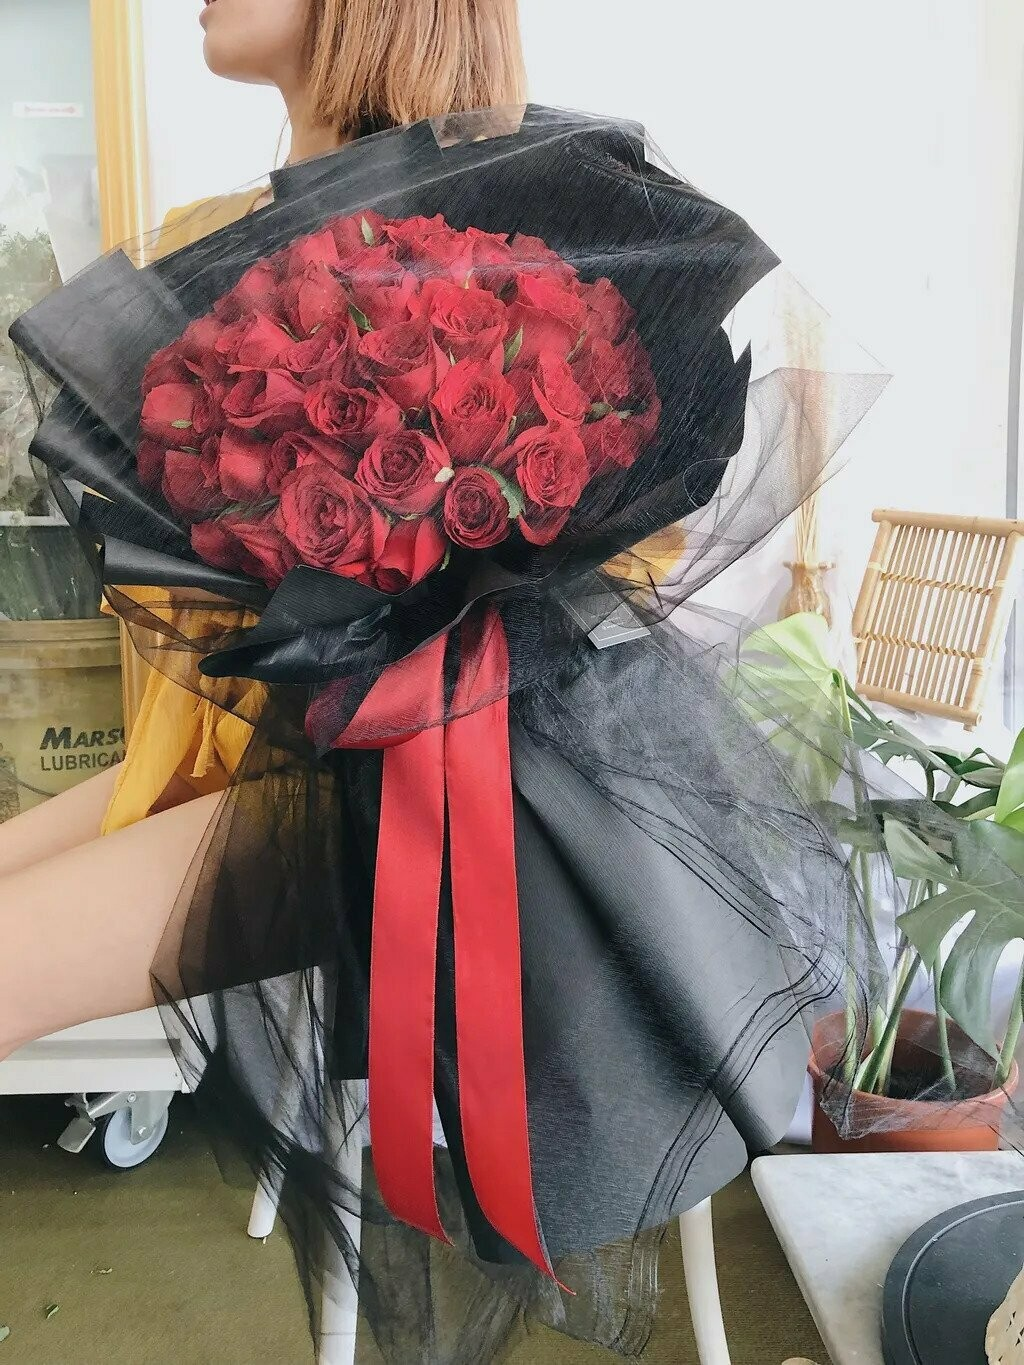 Promise (By: Temptation Florist from Seremban)